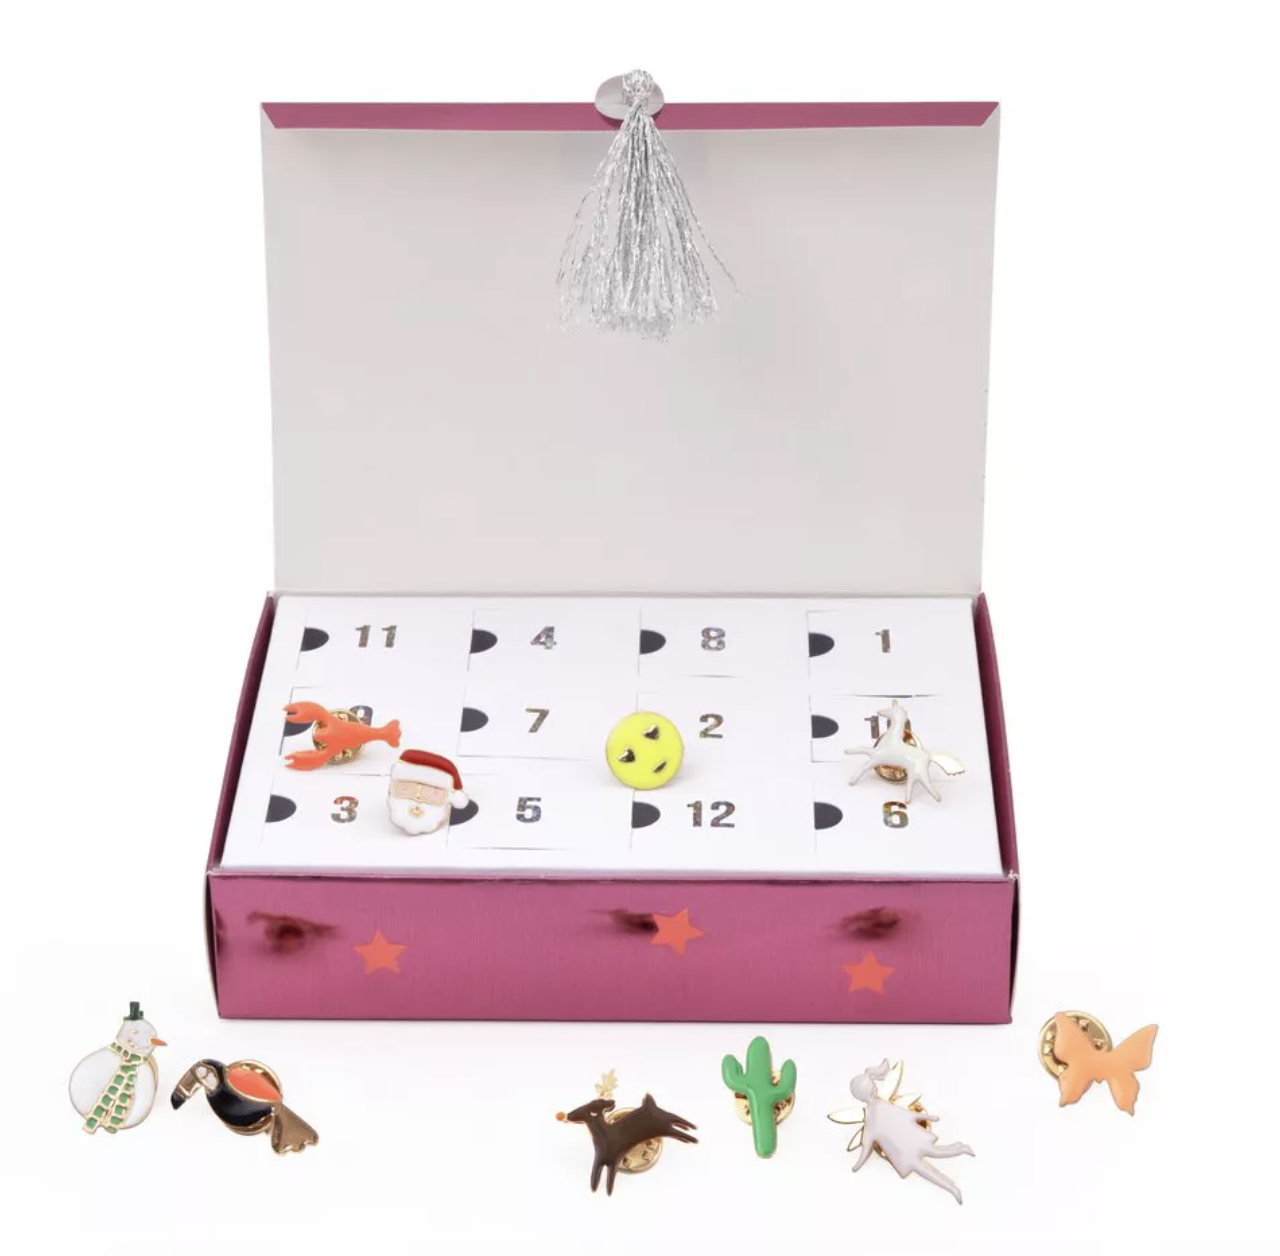 a pink box with 12 flaps each filled with an enamel pin